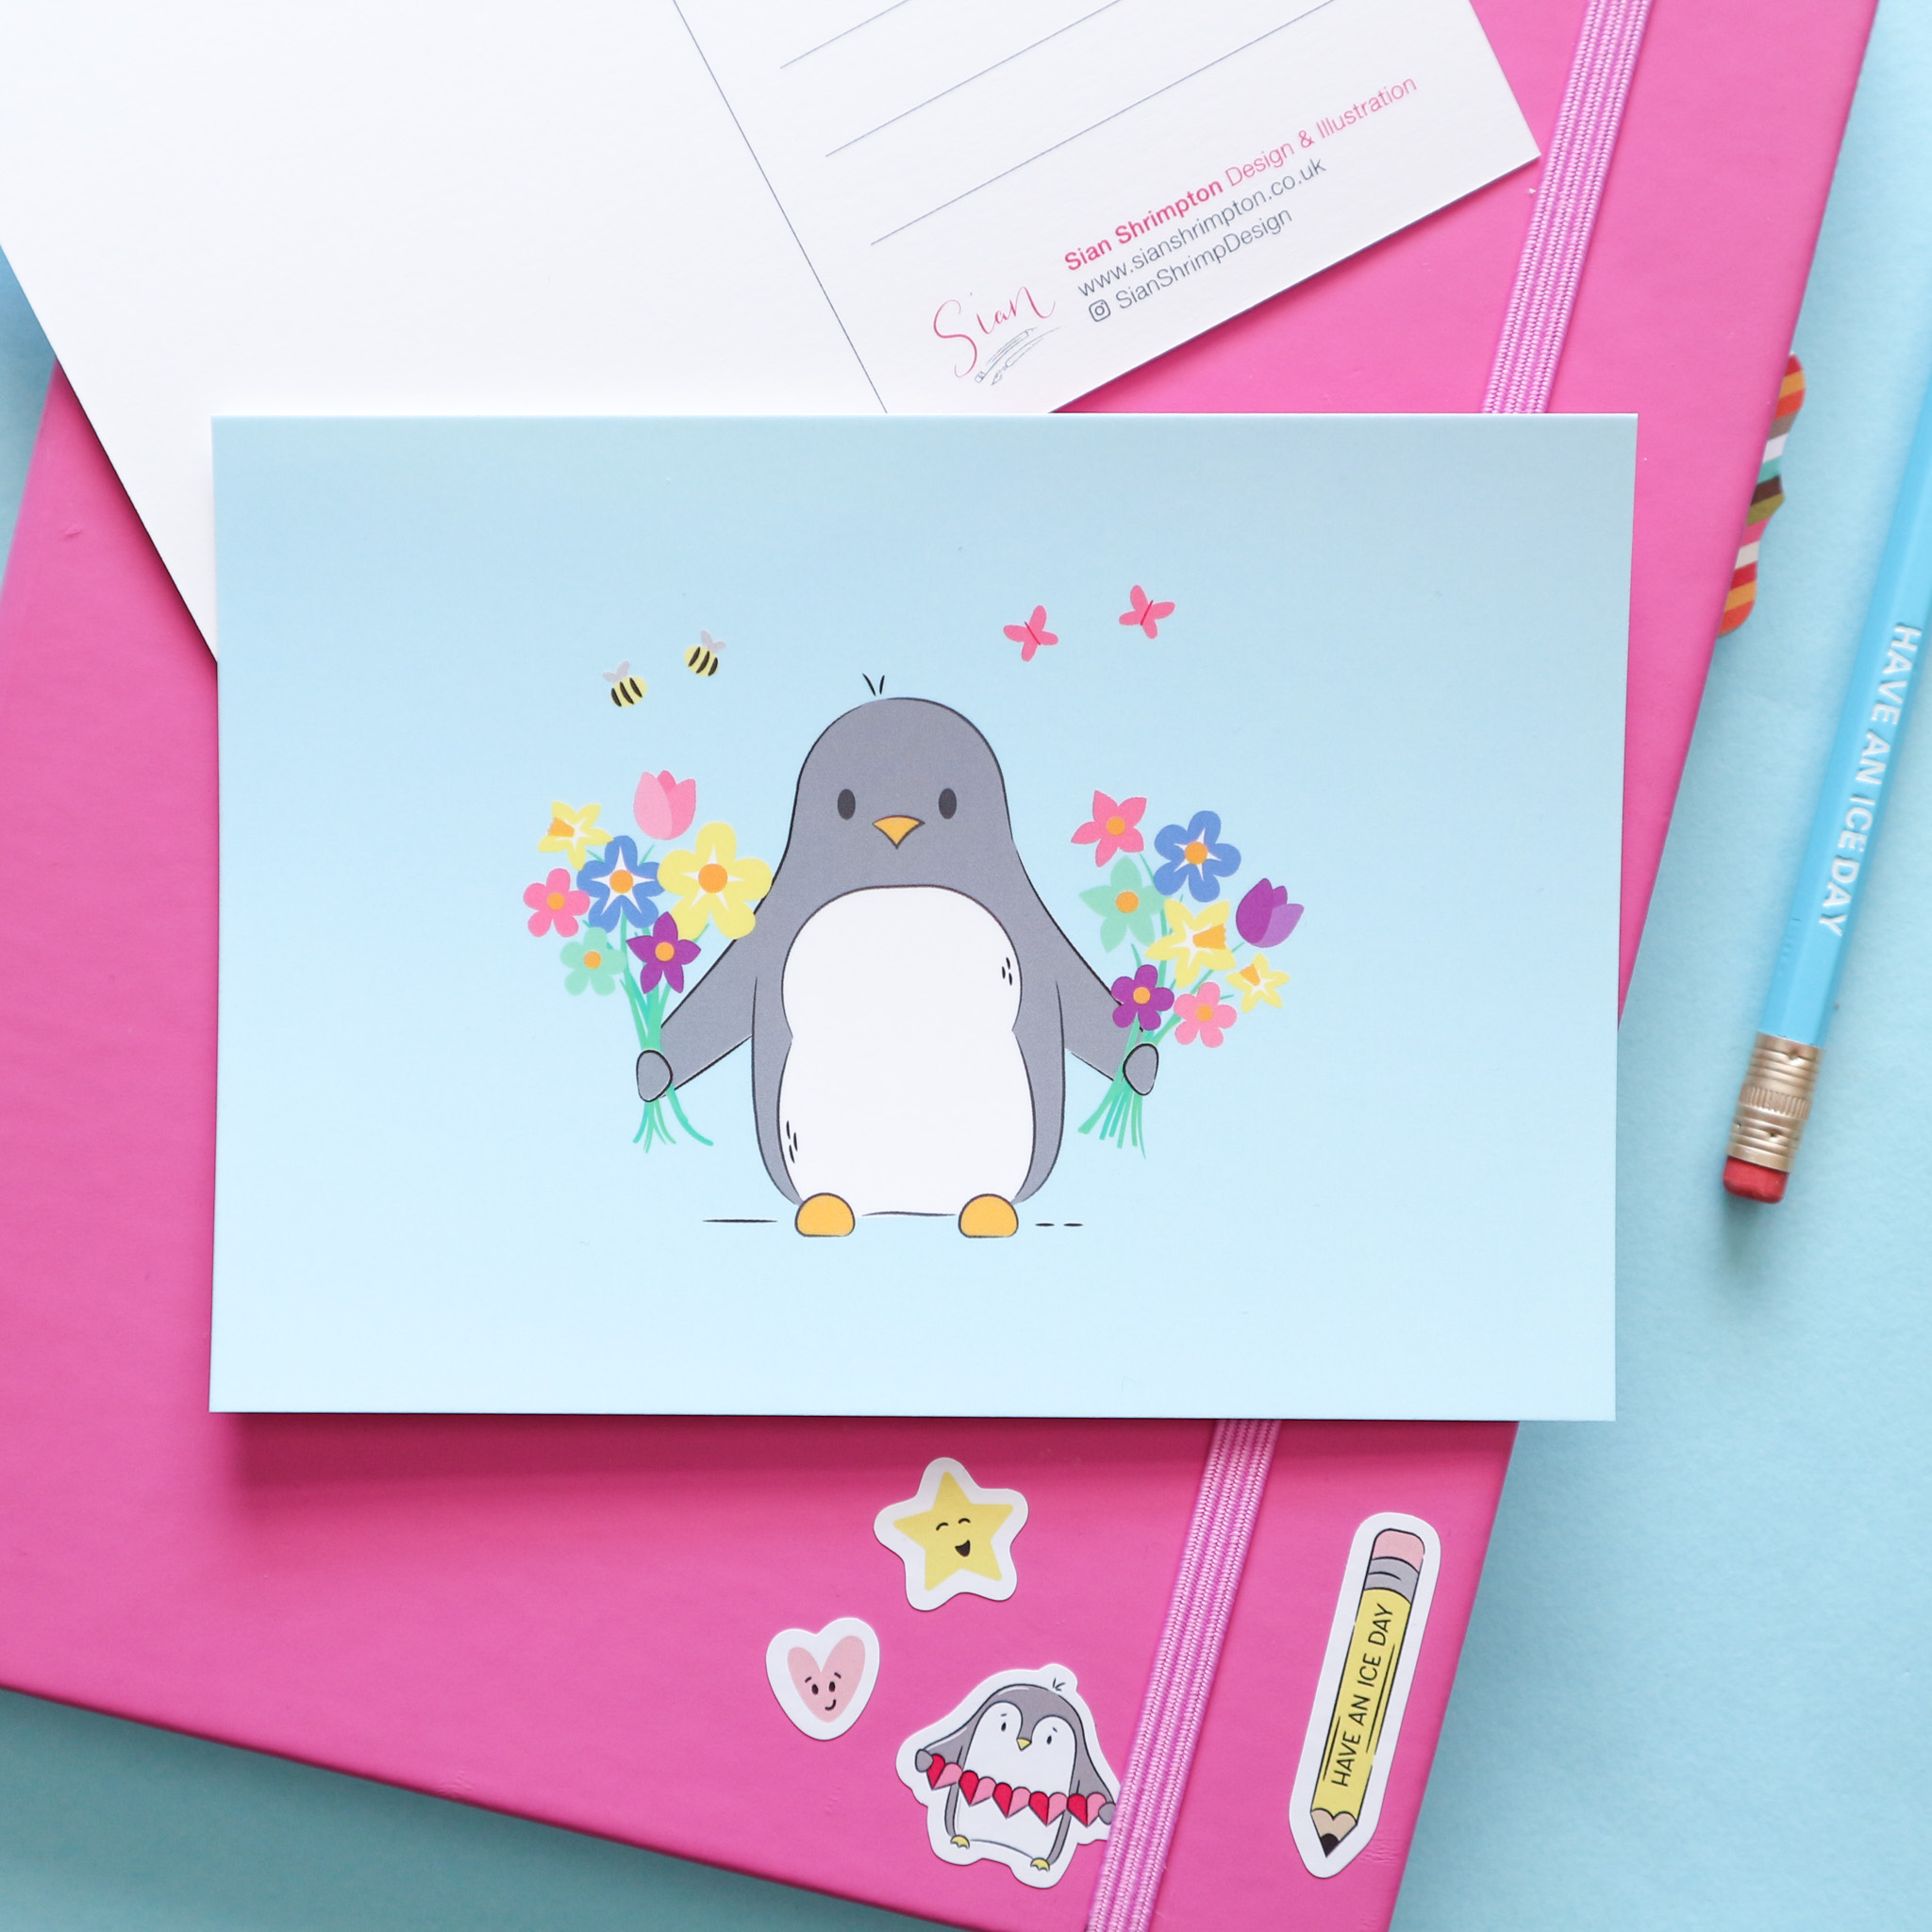 A postcard design showing a penguin holding two bunches of flowers. Styled with a pink notebook and a pencil on a blue background.